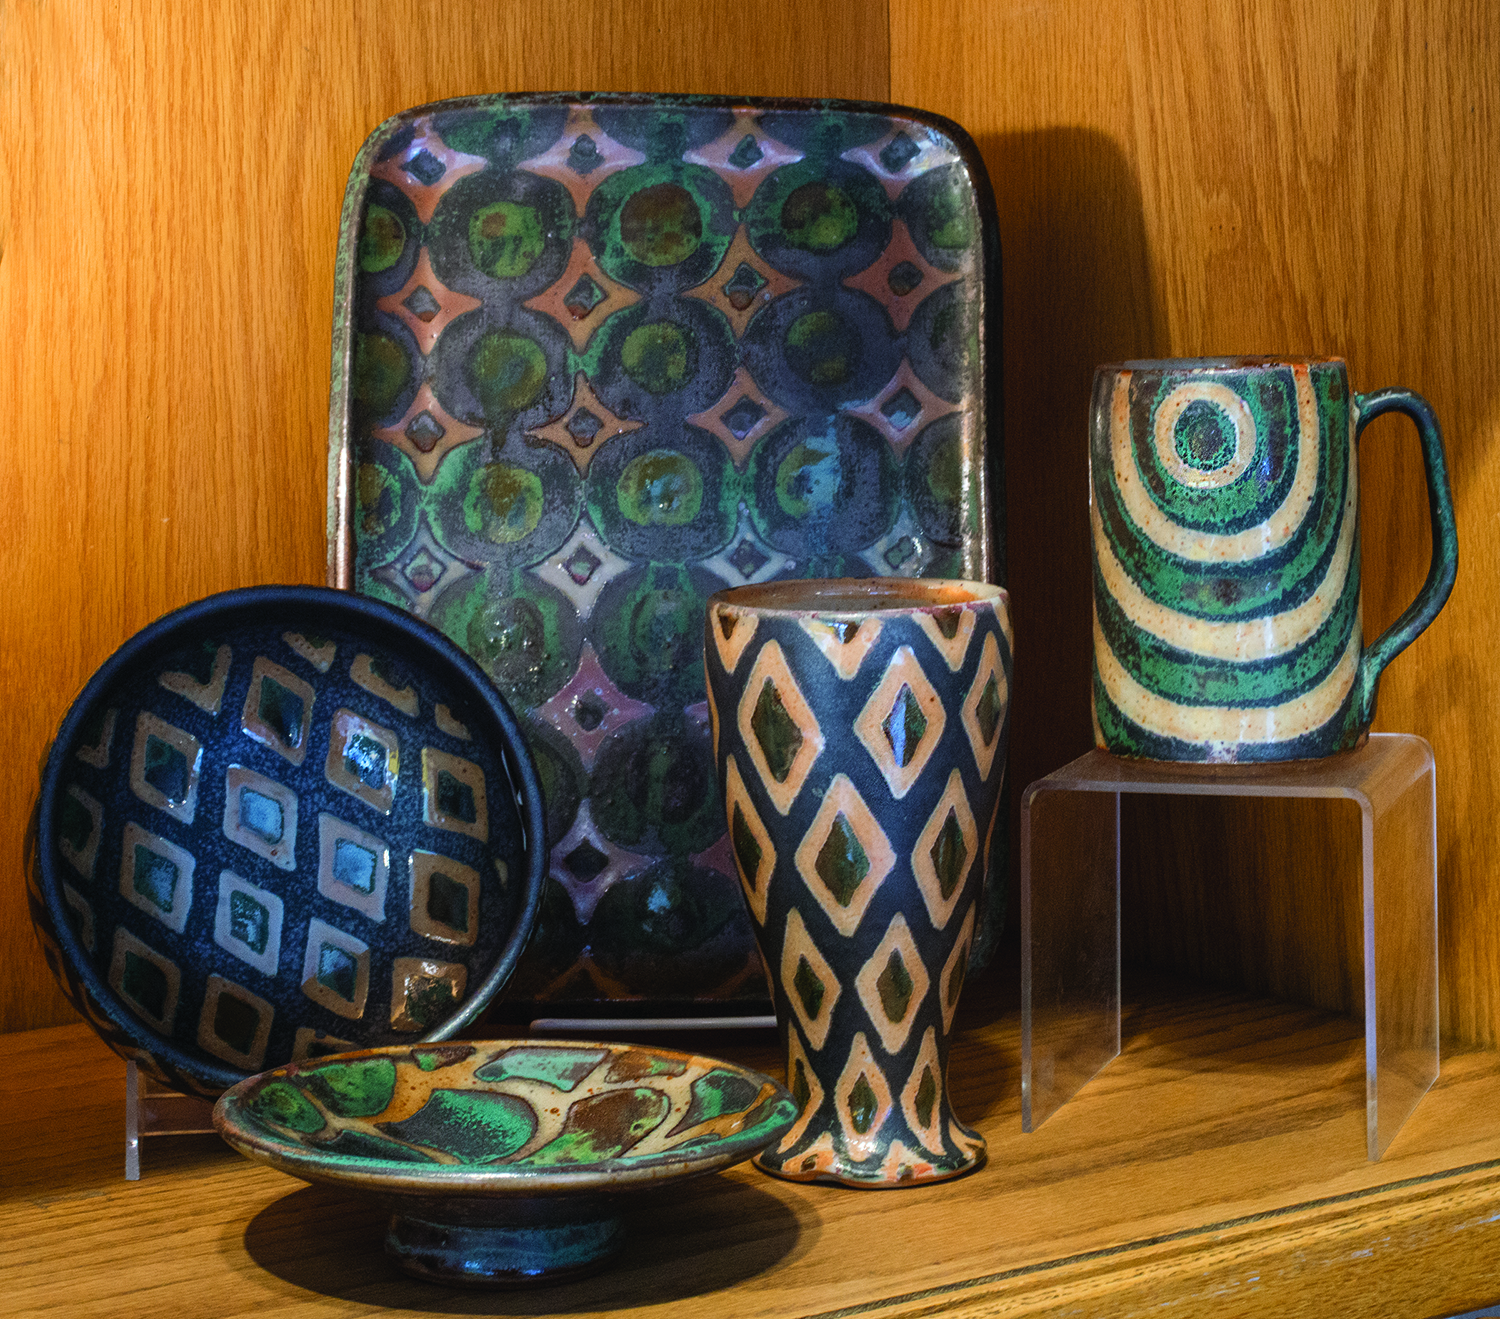 Pottery by Peter Karner